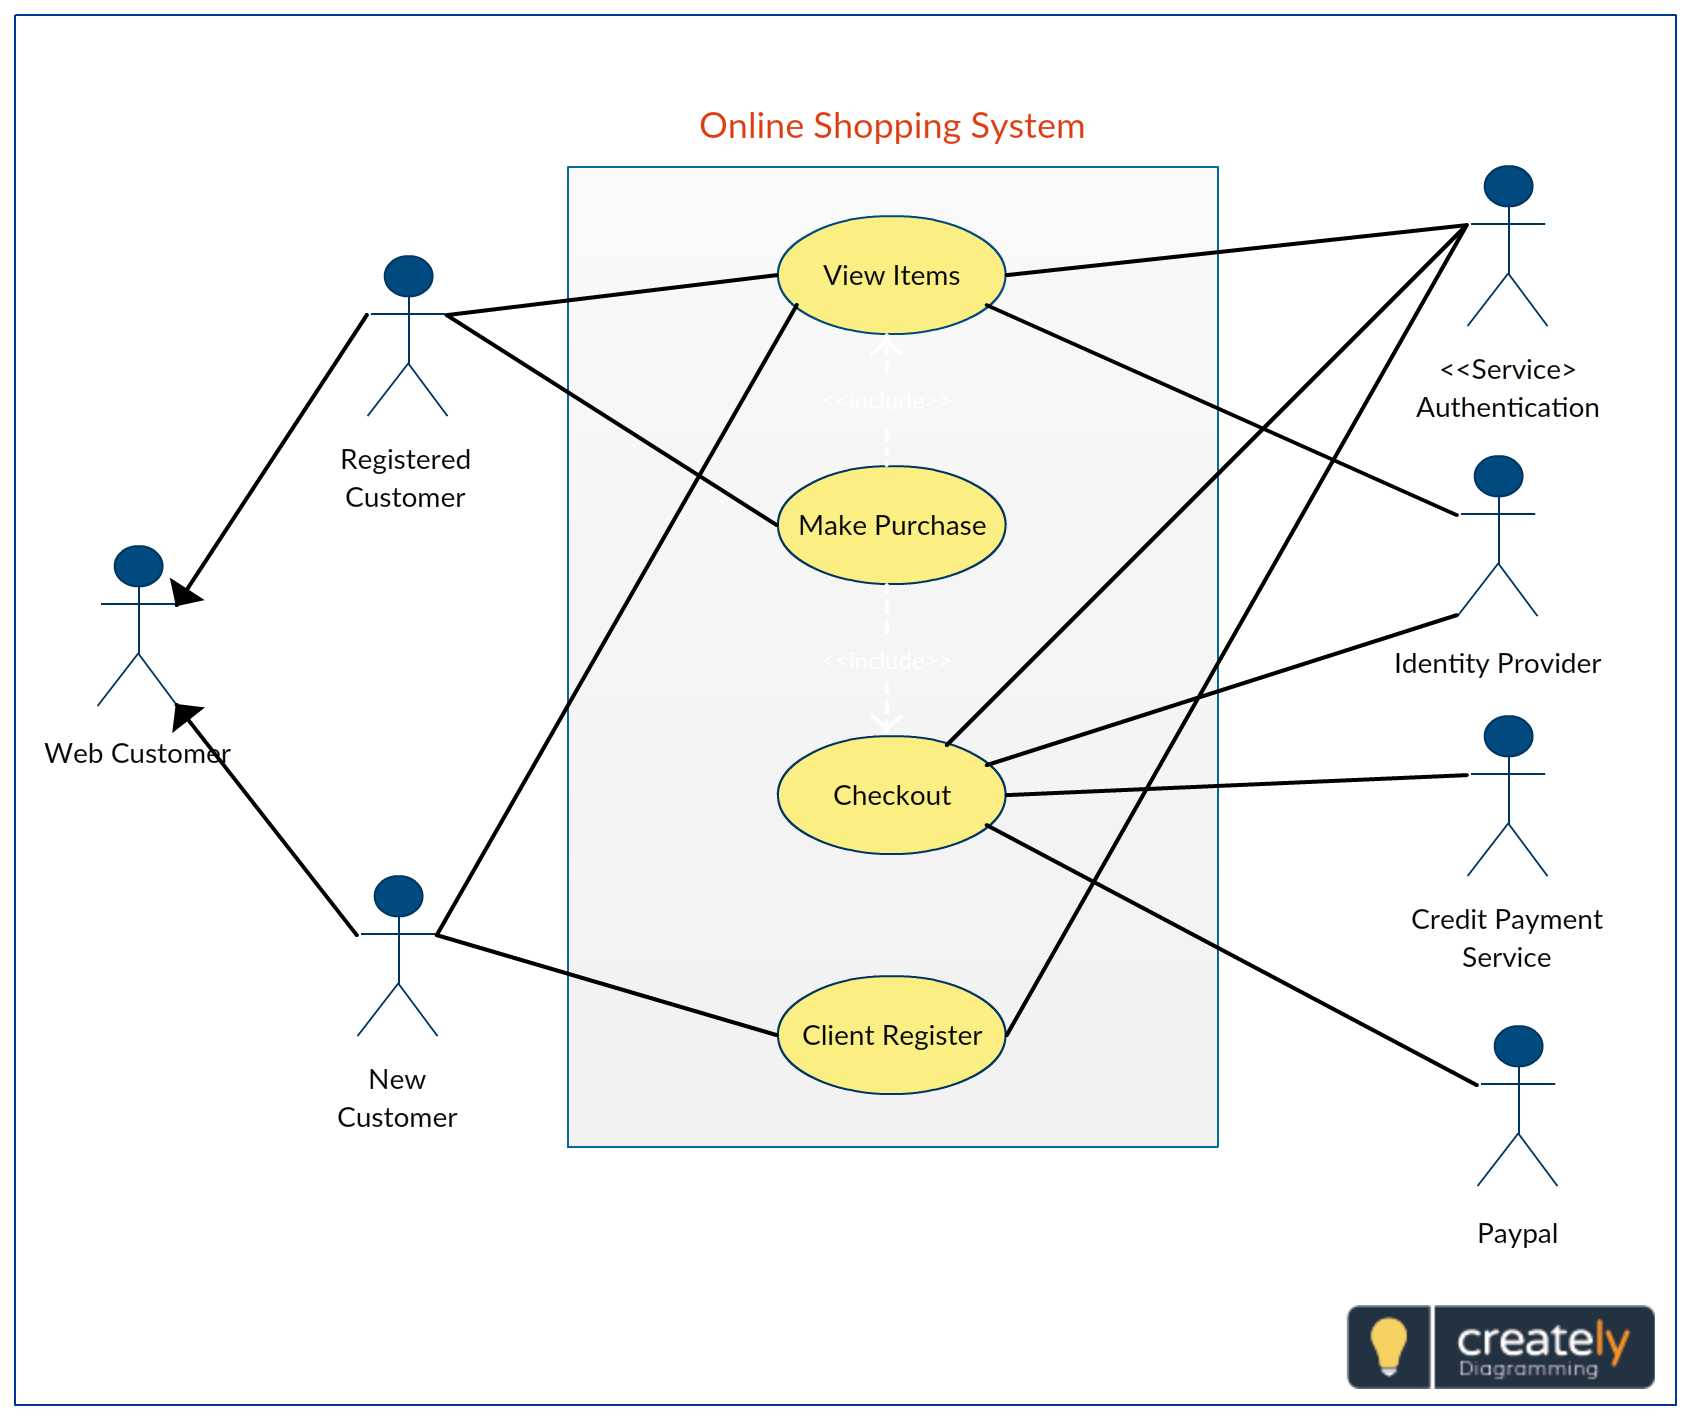 A Use Case Diagram Uml Showing Online Shopping System Actors Involvement In The System To Make Payments View Items And C Use Case Business Analysis Online